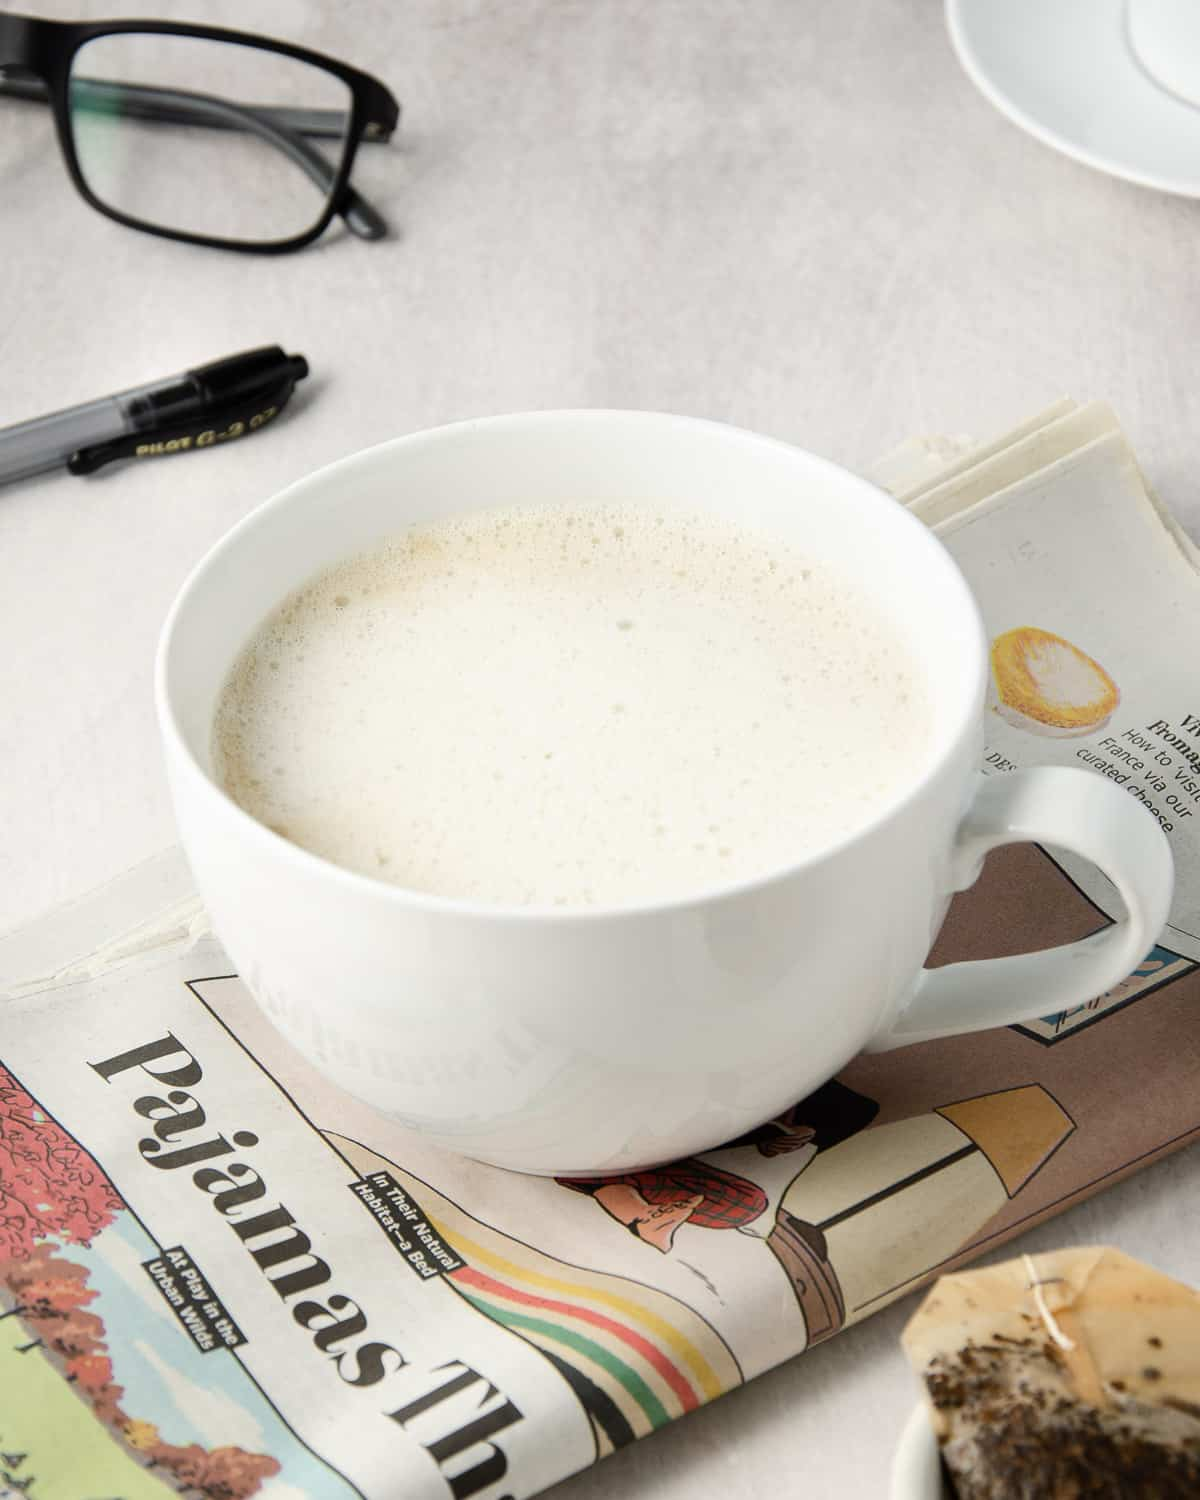 An angled view of earl grey latte in a mug on top of a newspaper.